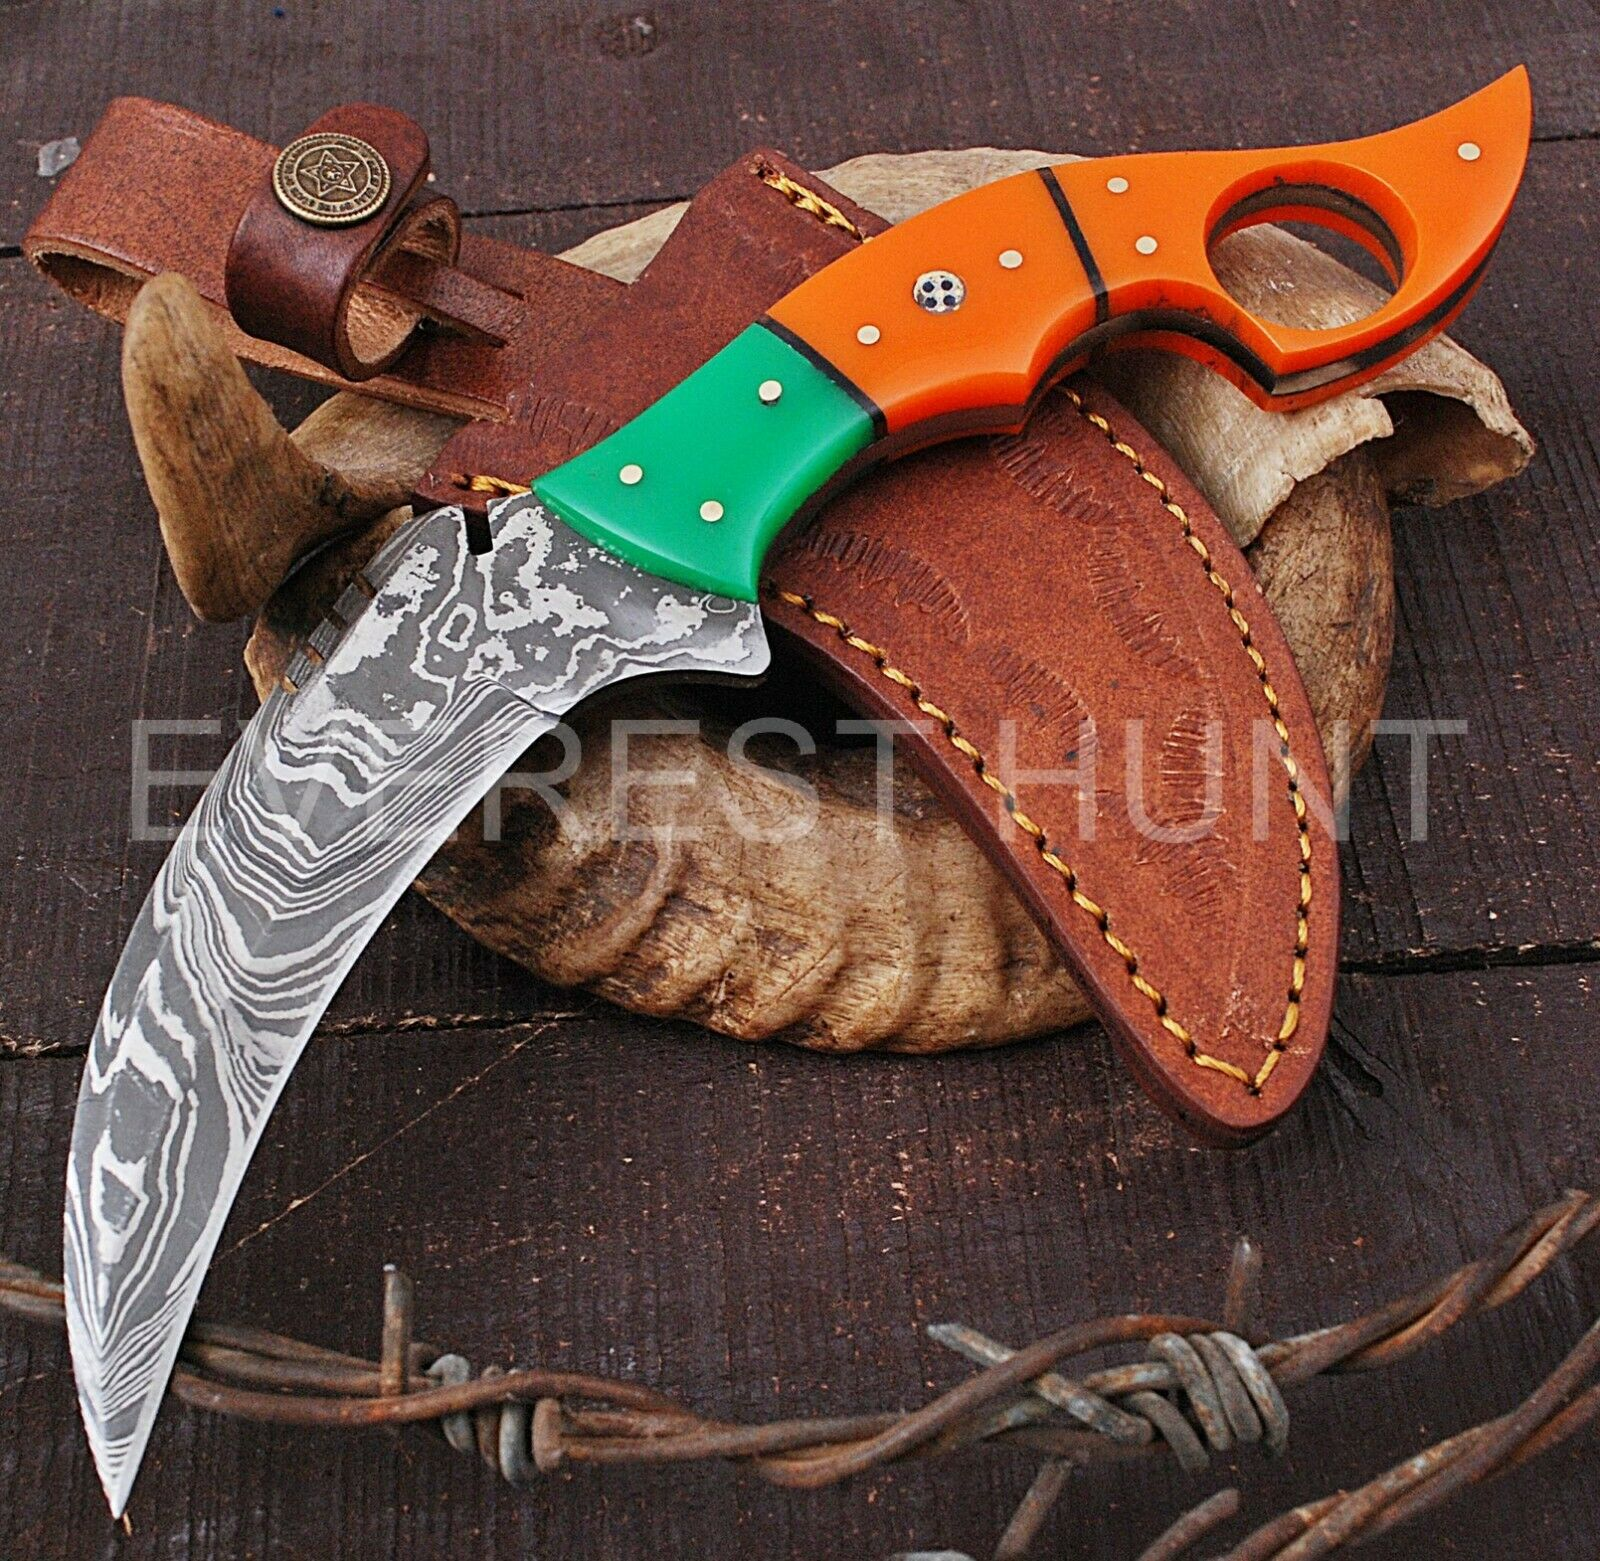 EH 9 CUSTOM HANDMADE DAMASCUS STEEL FULL TANG KARAMBIT HUNTING KNIFE B6-3970 - $14.50